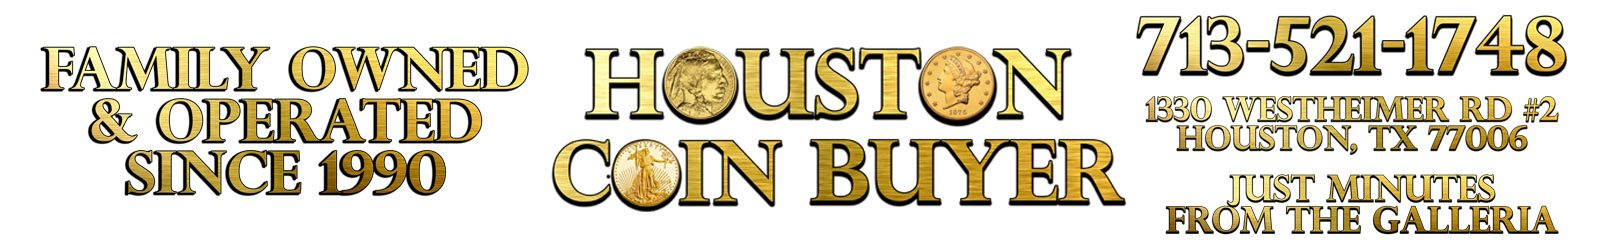 Sell Coins Houston | 713-521-1748 | Buy Coins Houston